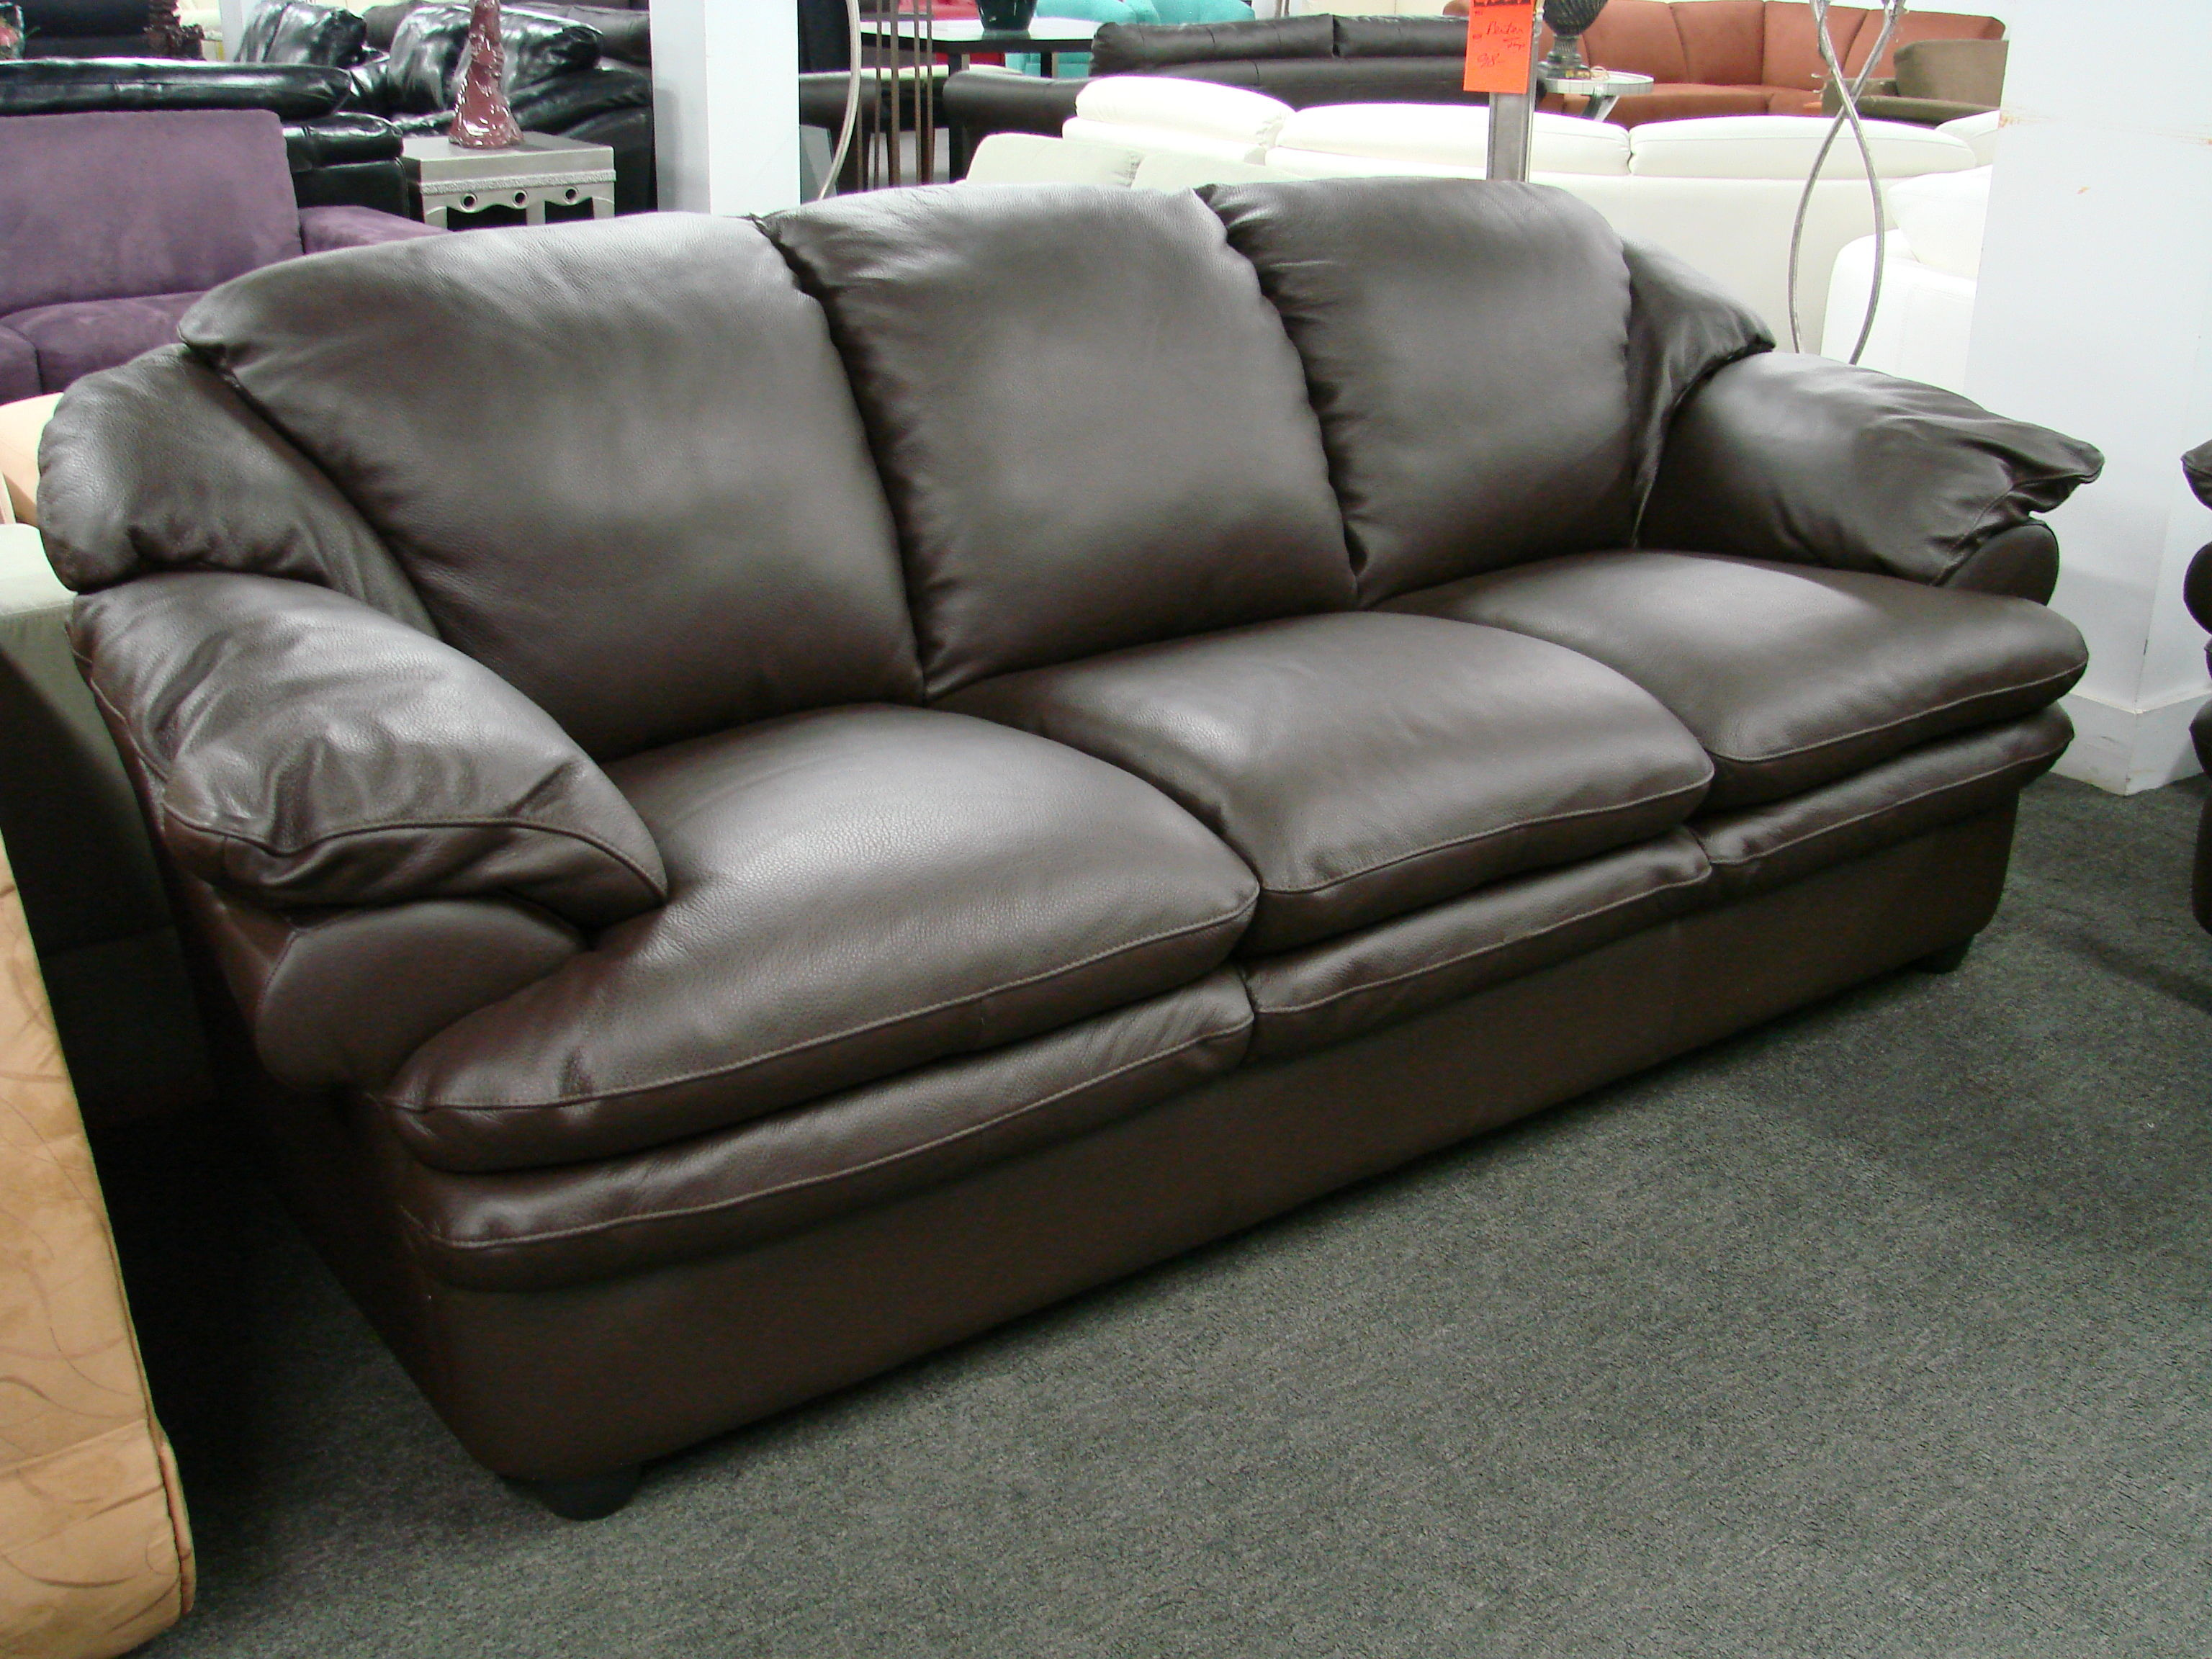 awesome natuzzi leather sofa reviews concept-Excellent Natuzzi Leather sofa Reviews Online